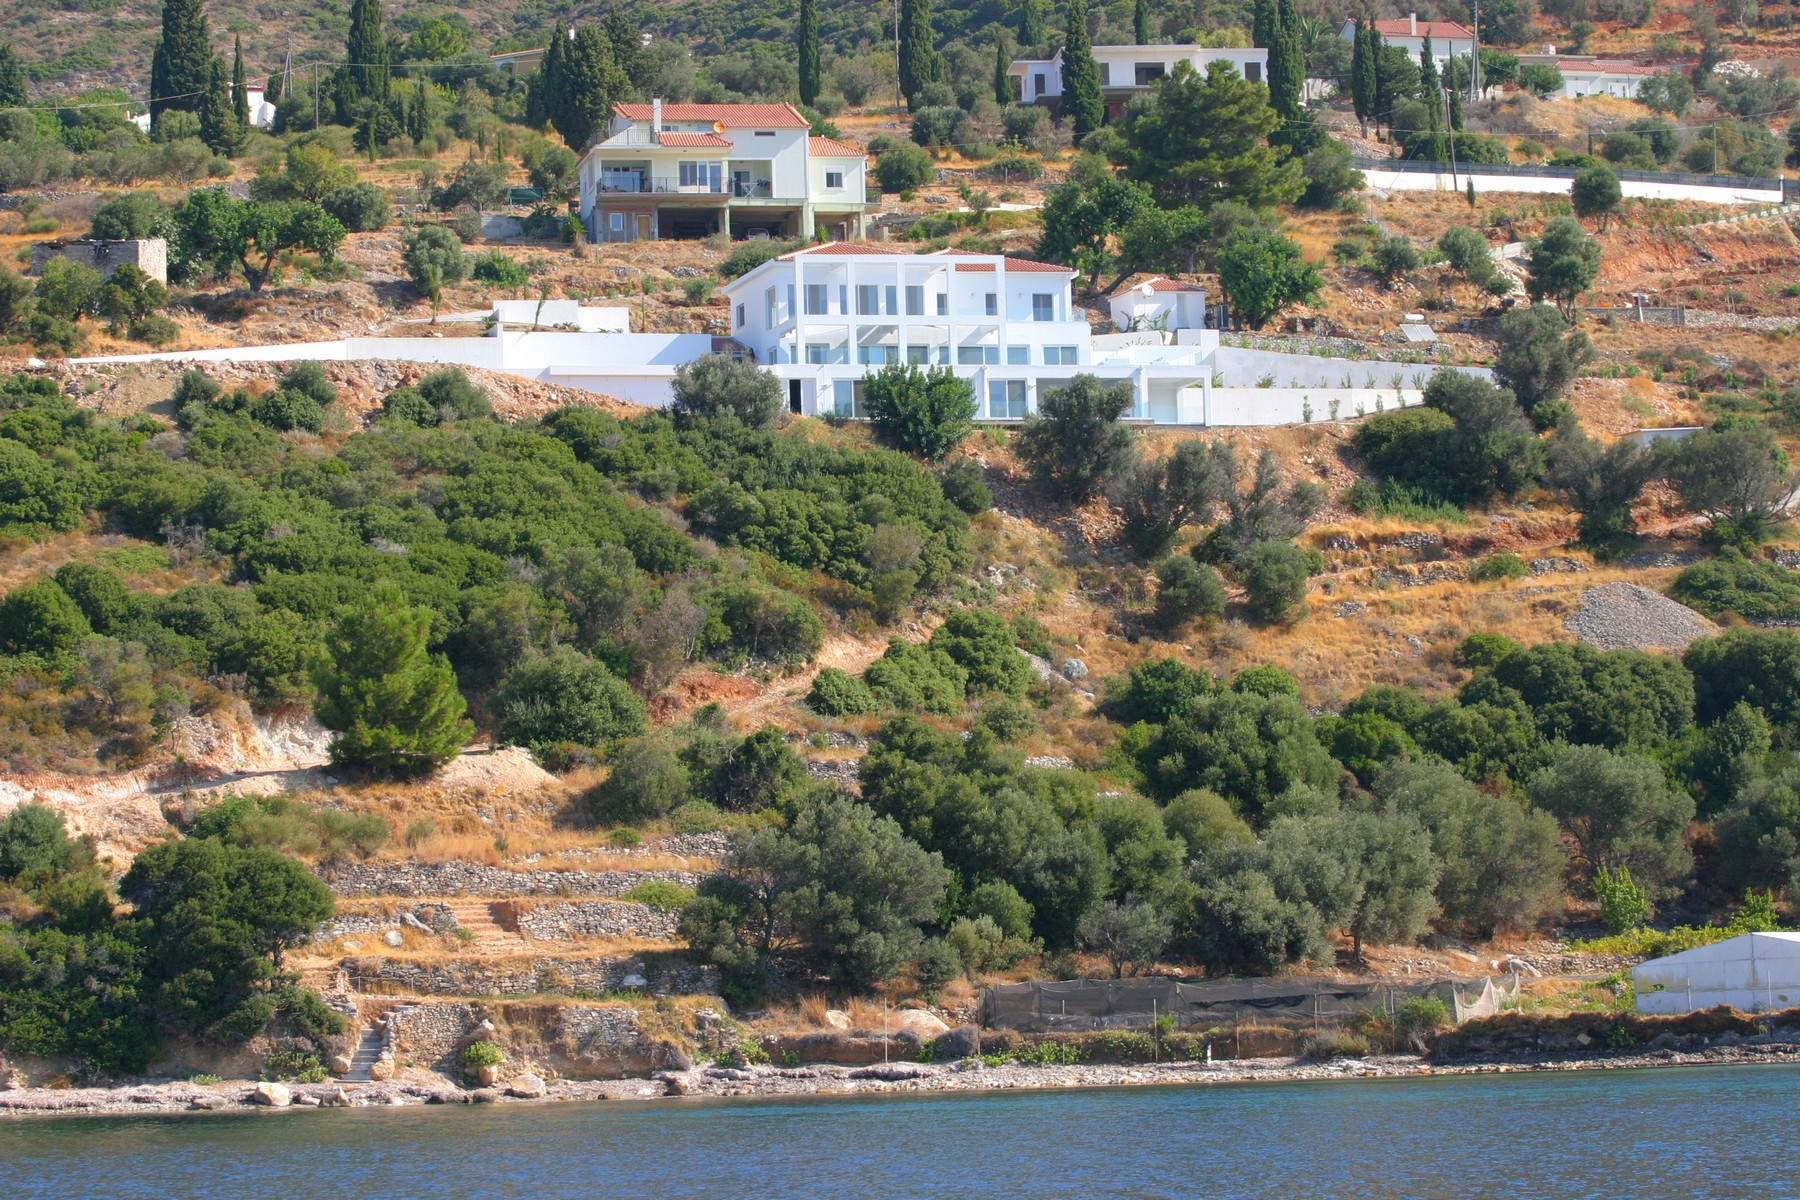 Single Family Home for Sale at Samos Villa Kalami, Samos, East Aegean Sea Other Greece, Other Areas In Greece, 83100 Greece